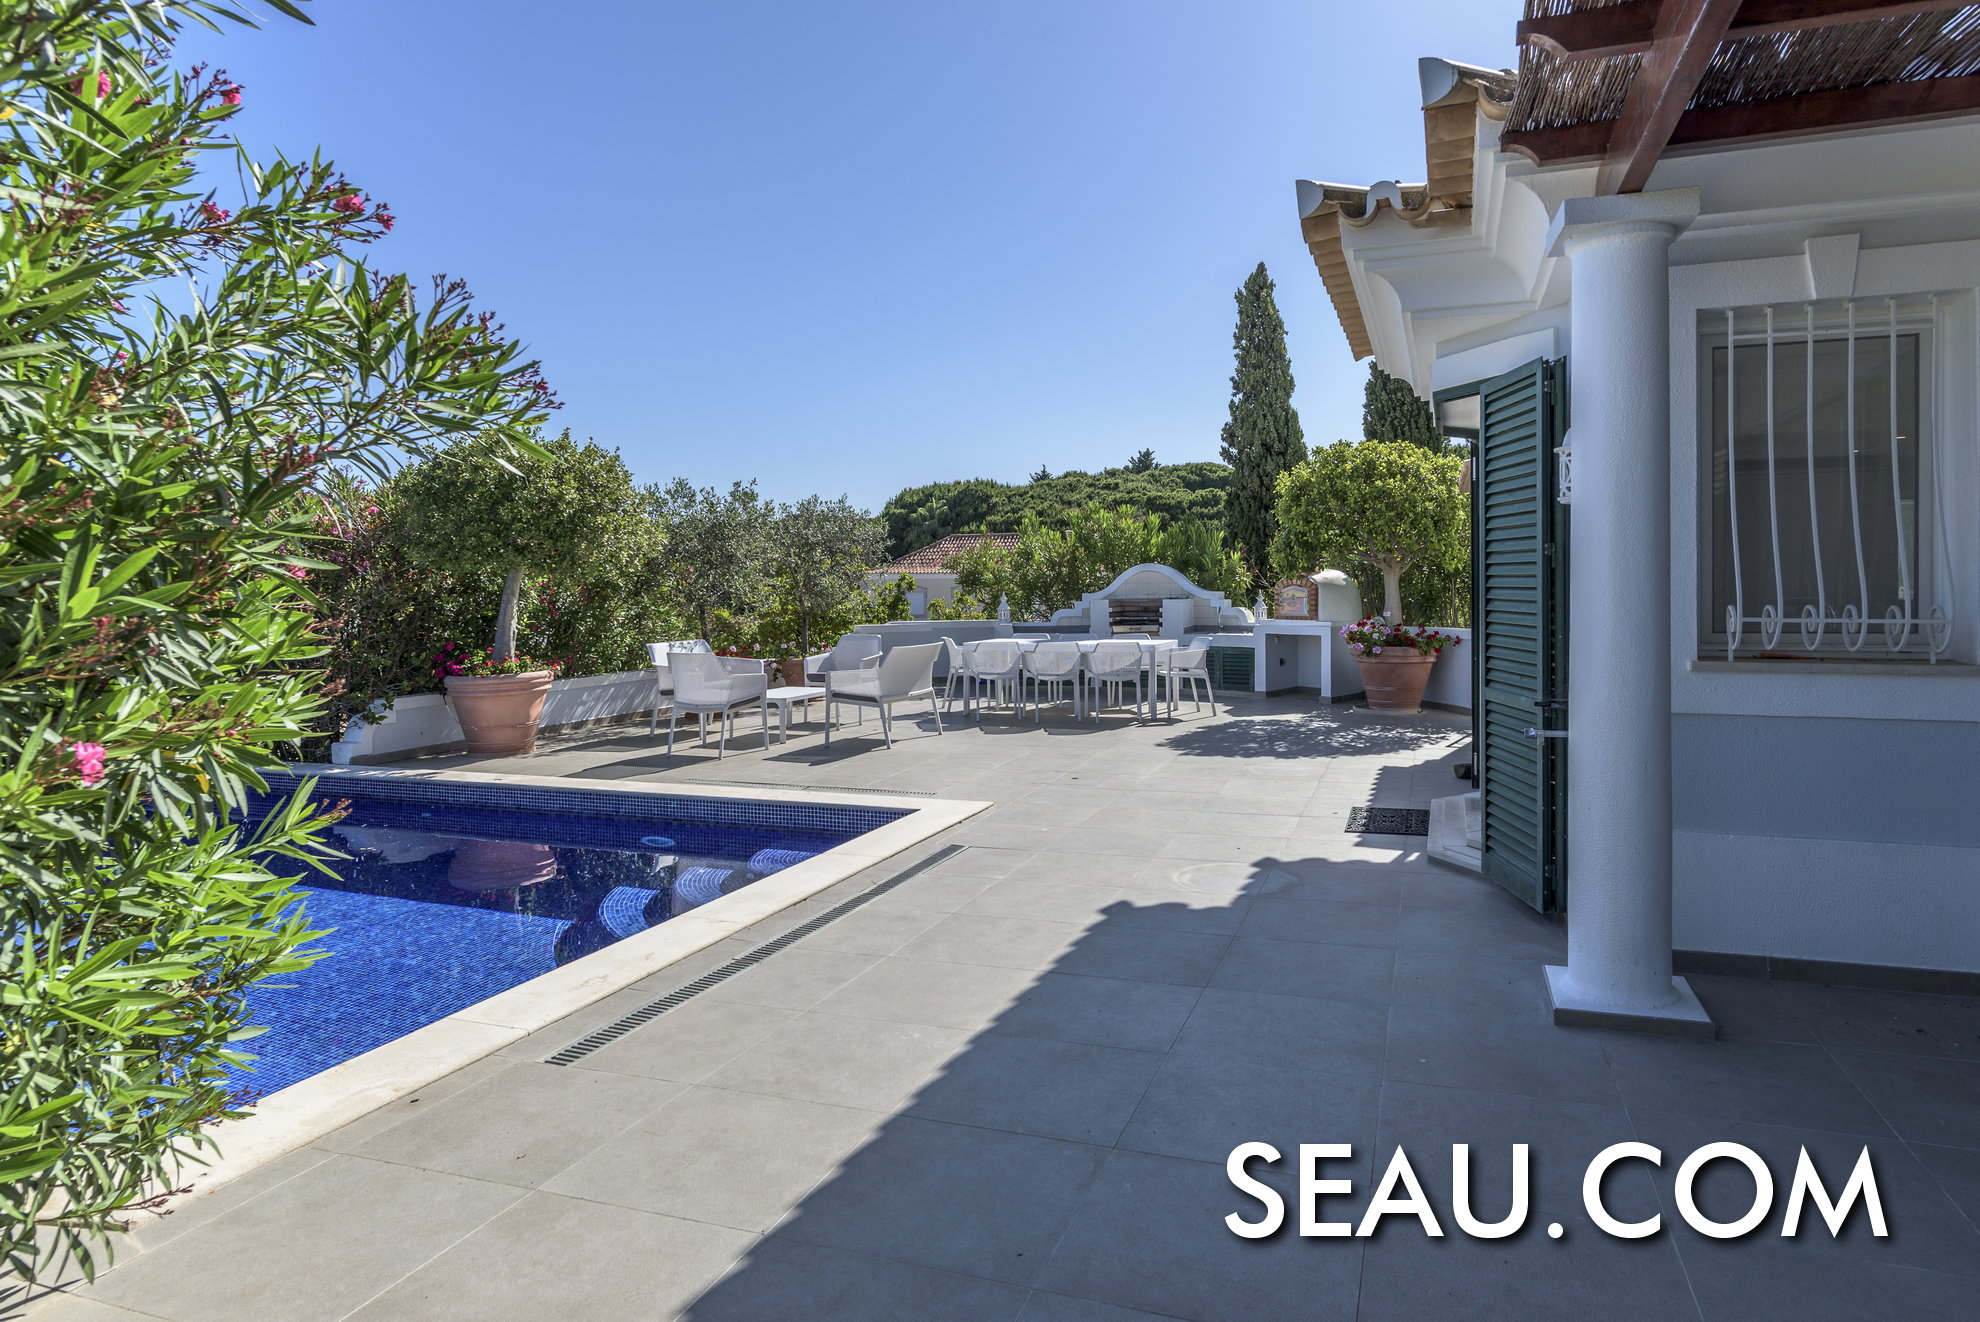 Large terrace with pool, barbecue and sitting area with stunning views over the sea and the Algarvian hills